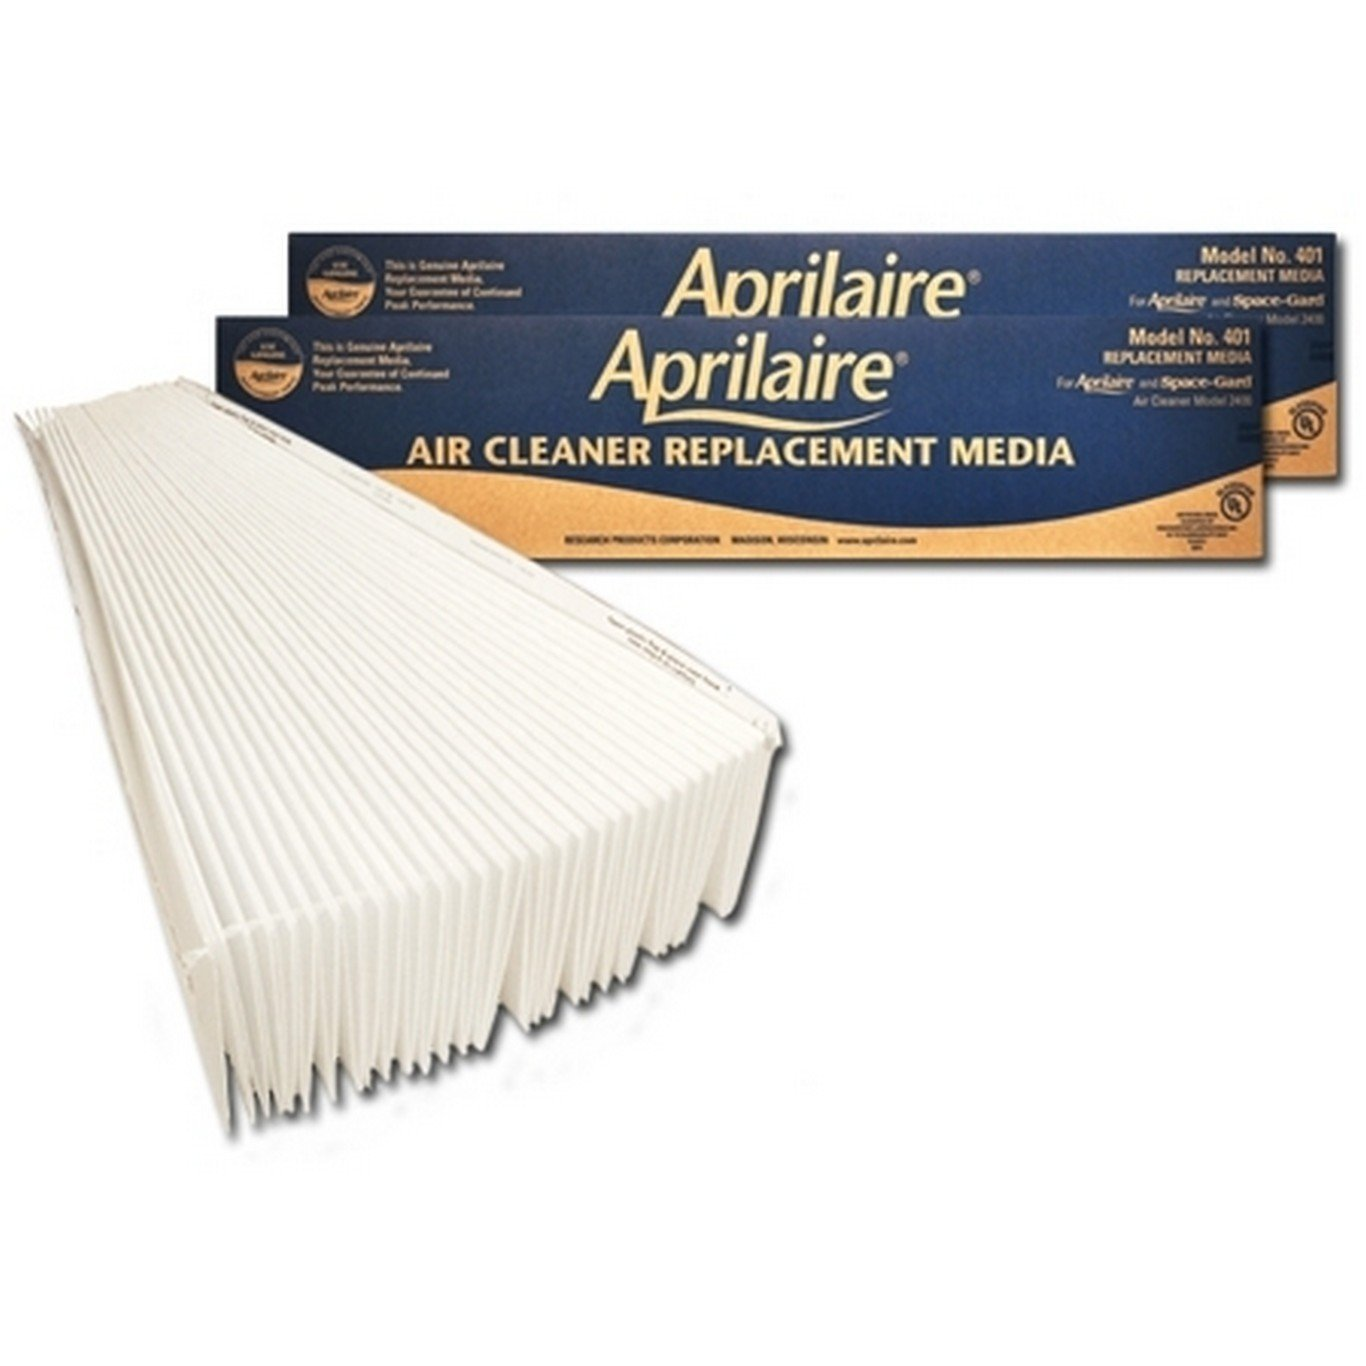 Aprilaire 401 Air Filter for Aprilaire Whole Home Air Purifier Models: 2400, Space-Gard 2400, MERV 10 (Pack of 2)